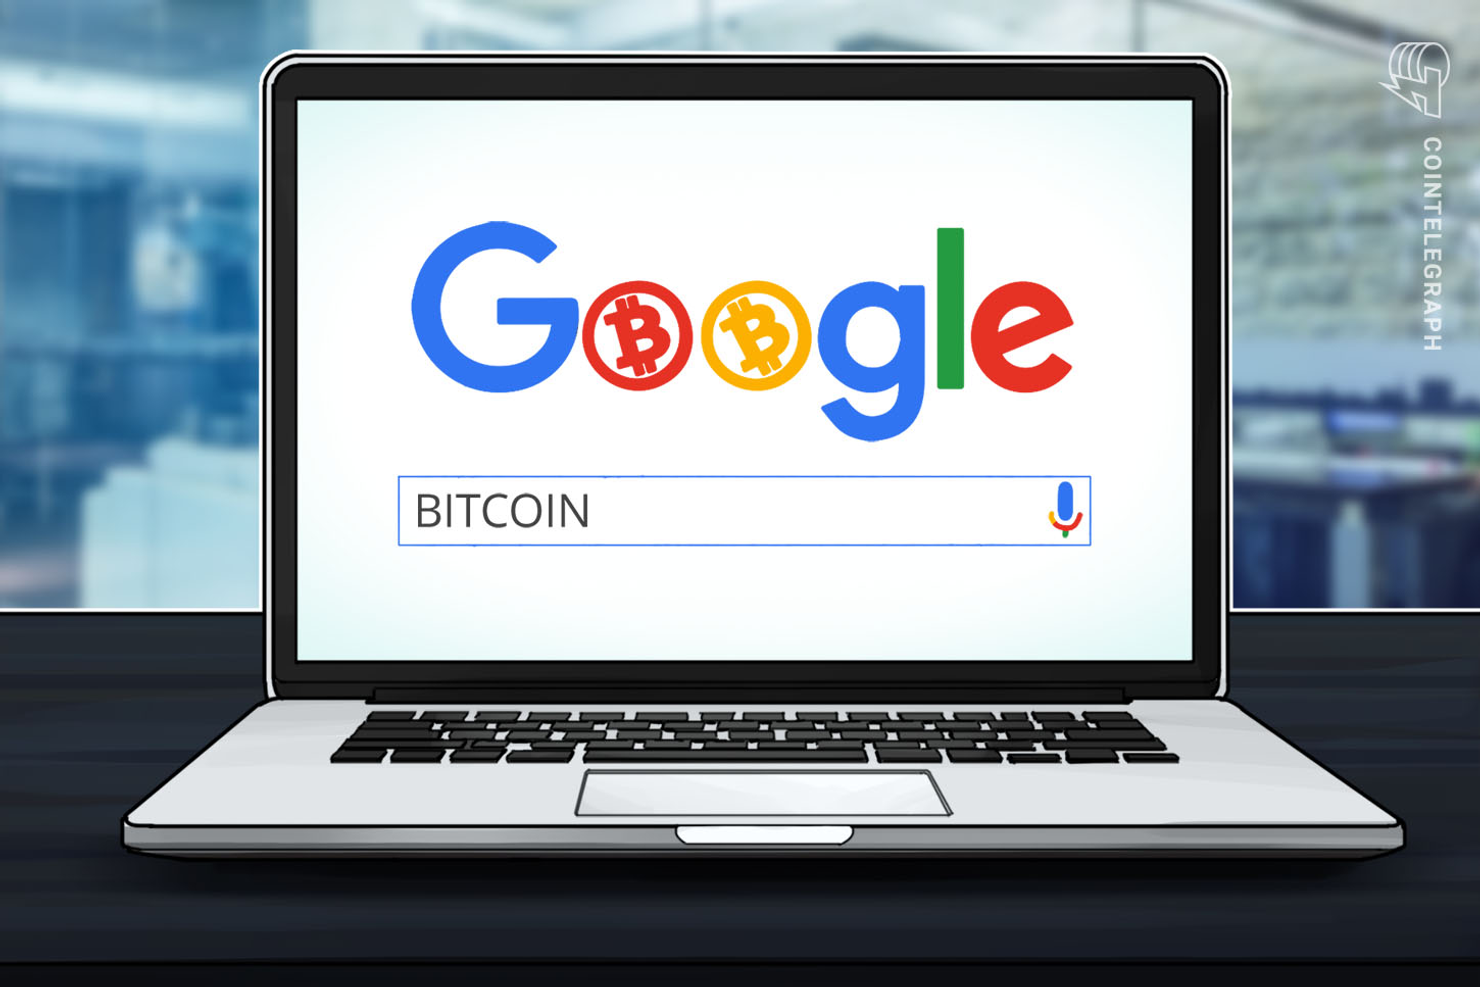 Google Searches for Bitcoin Spike After BTC Price Hits 6-Month Lows